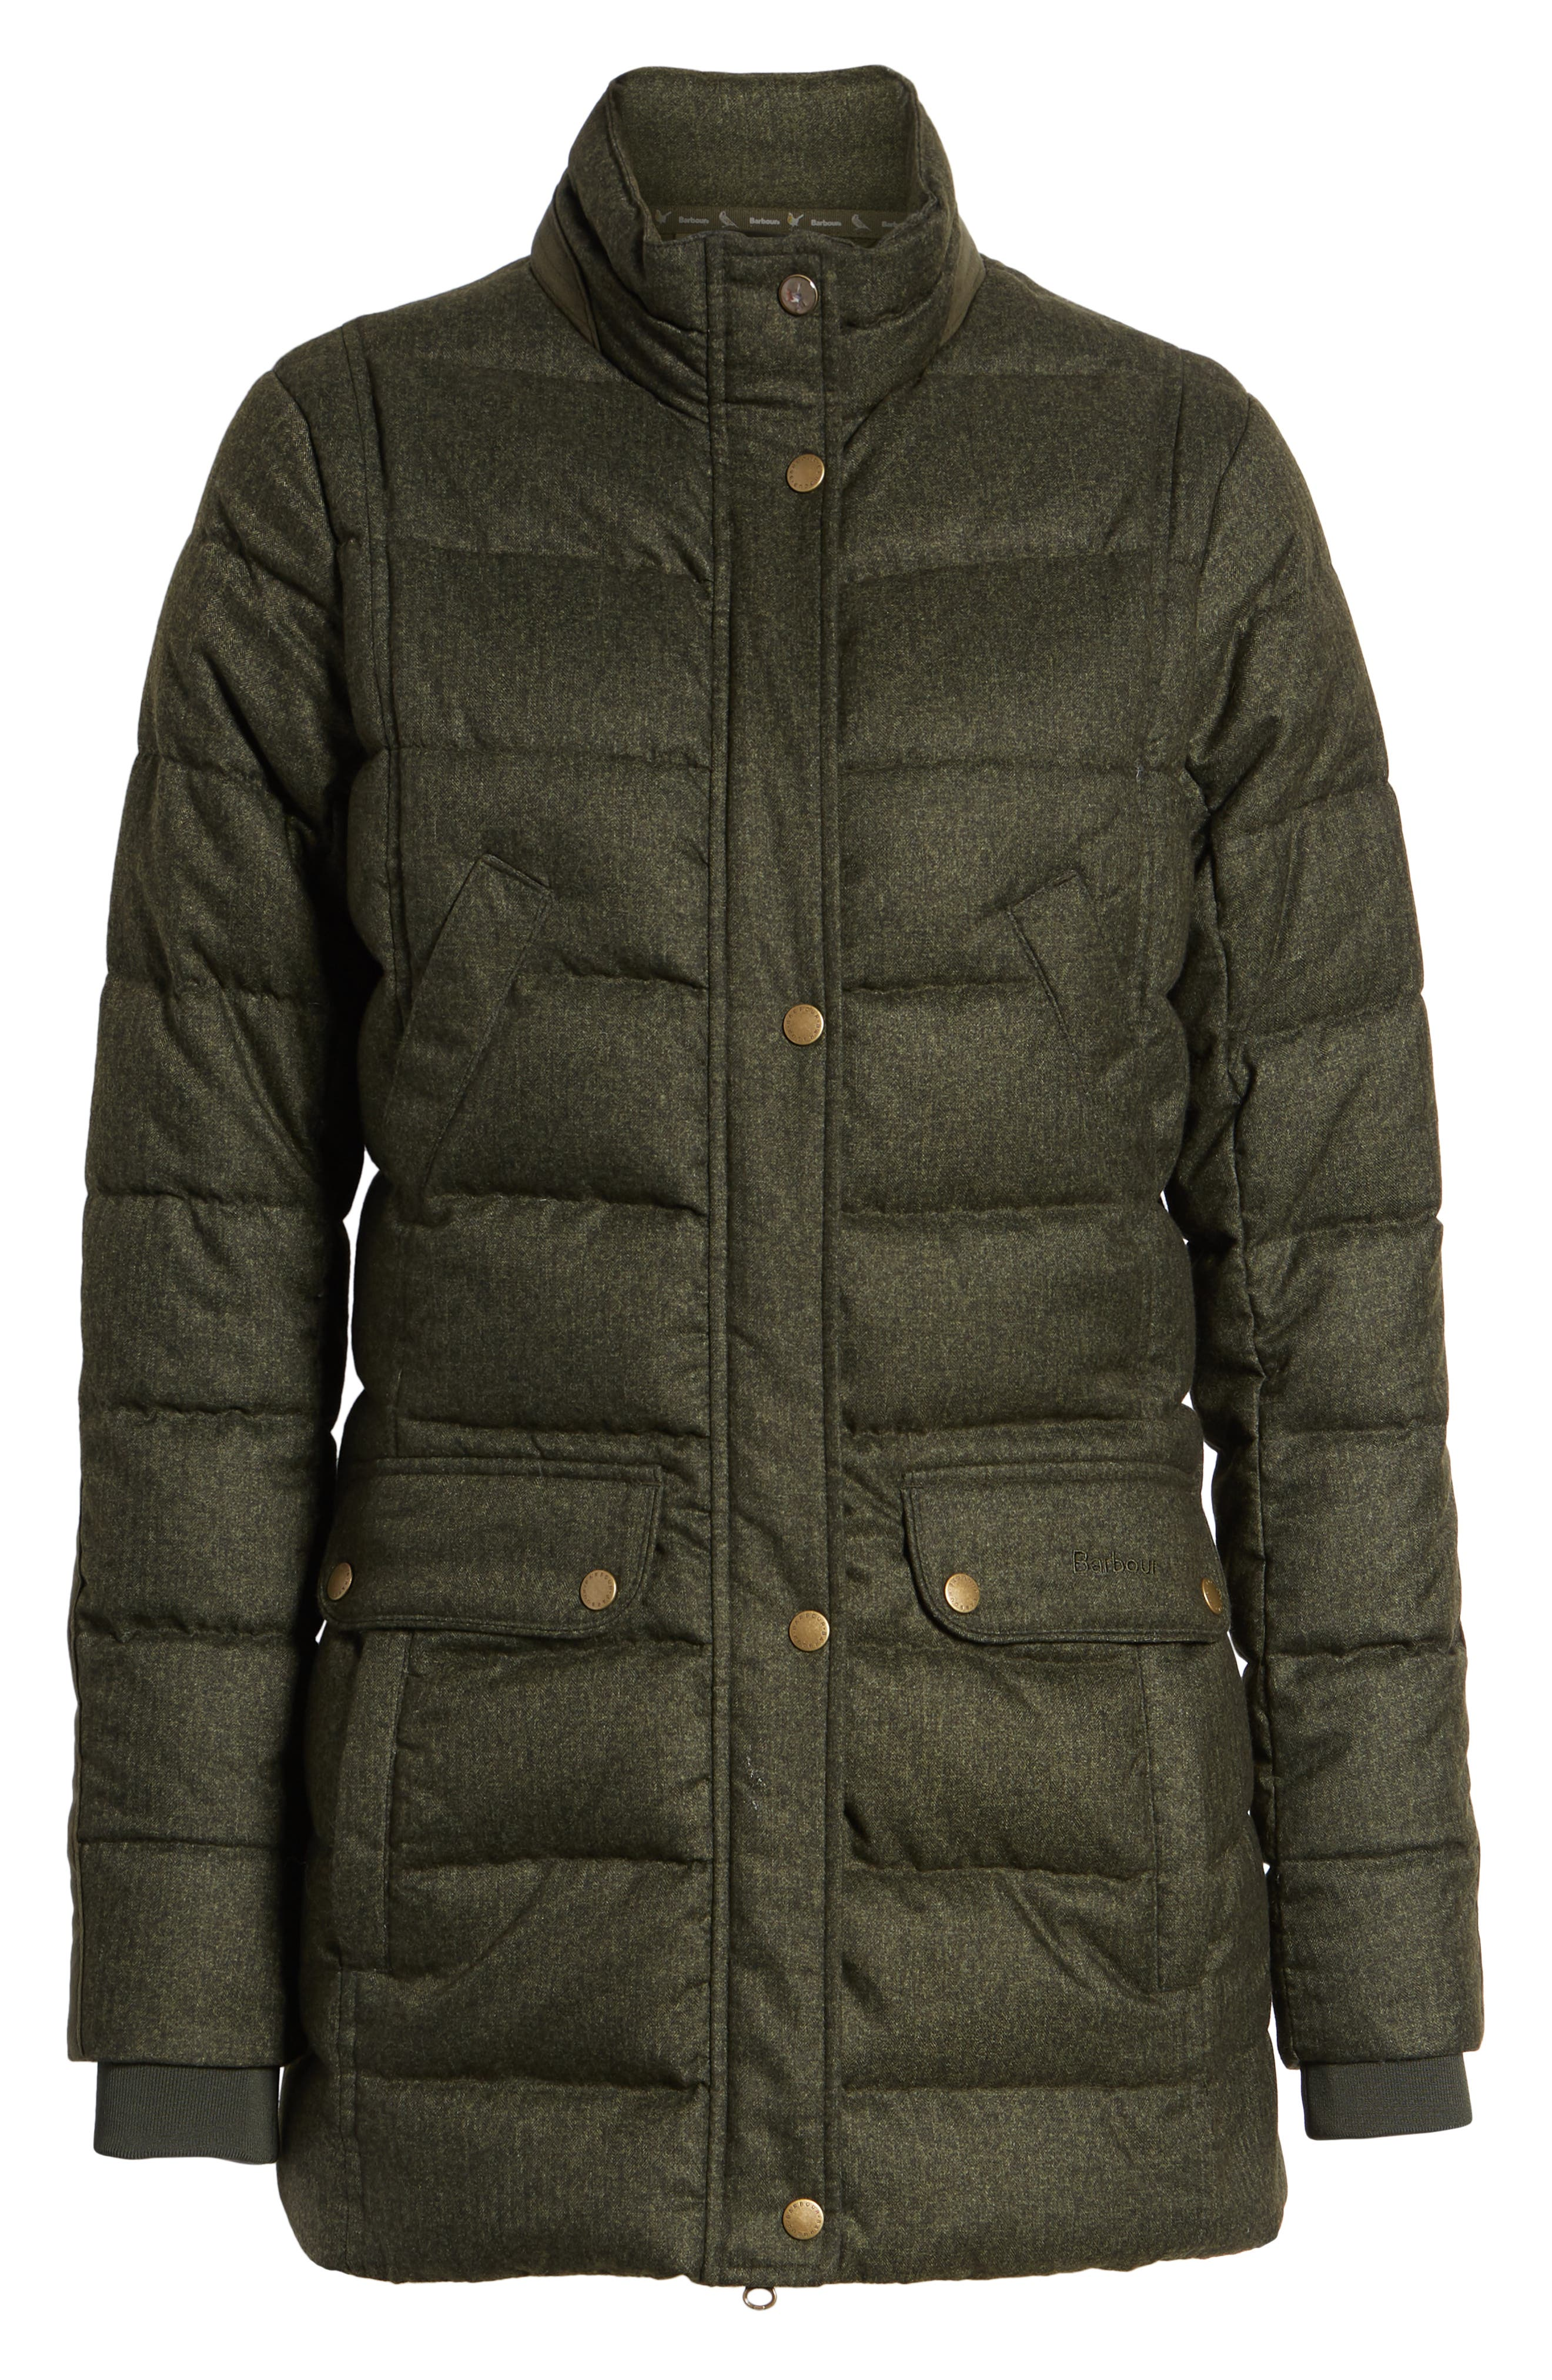 Goldfinch Quilted Jacket,                             Alternate thumbnail 6, color,                             OLIVE